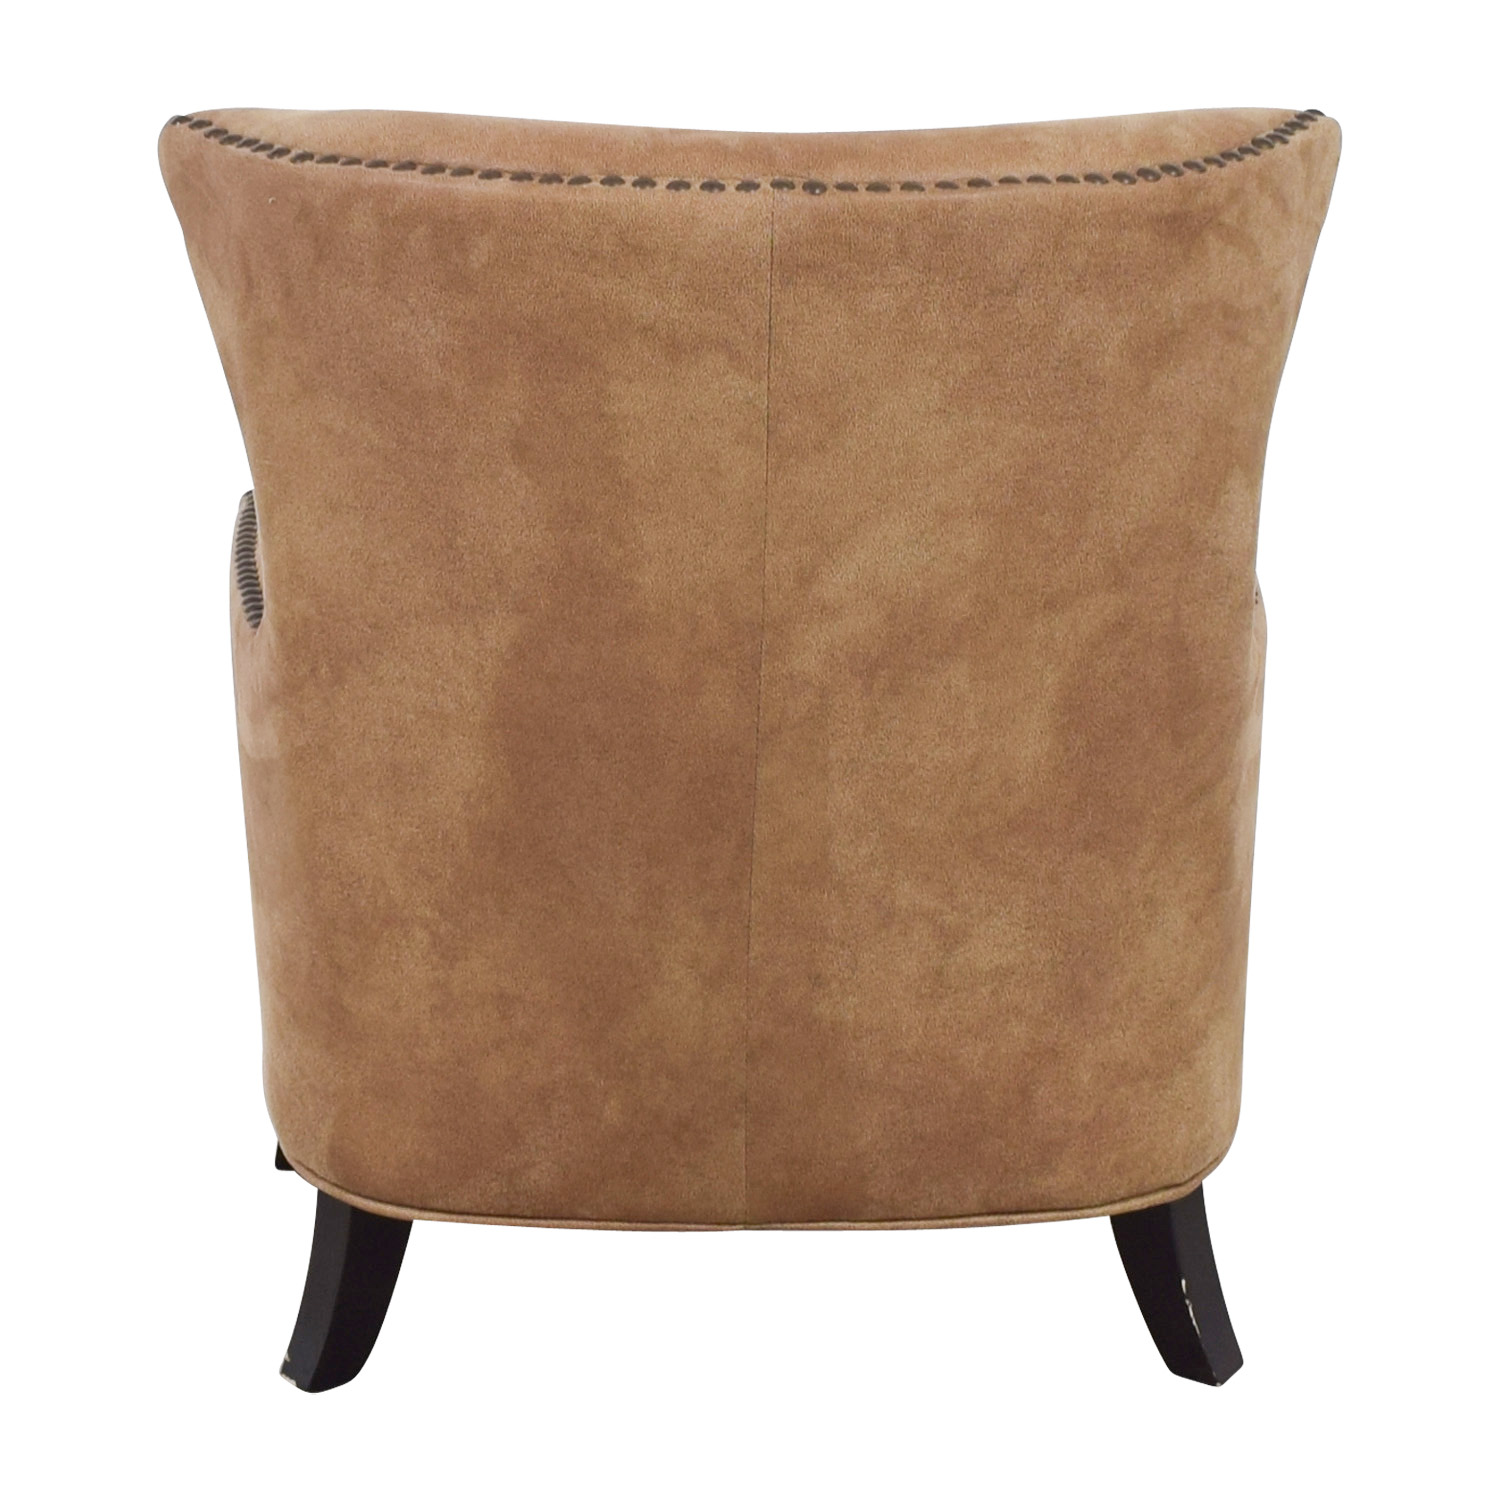 buy Joss & Main Nola Brown Nailhead Arm Chair Joss & Main